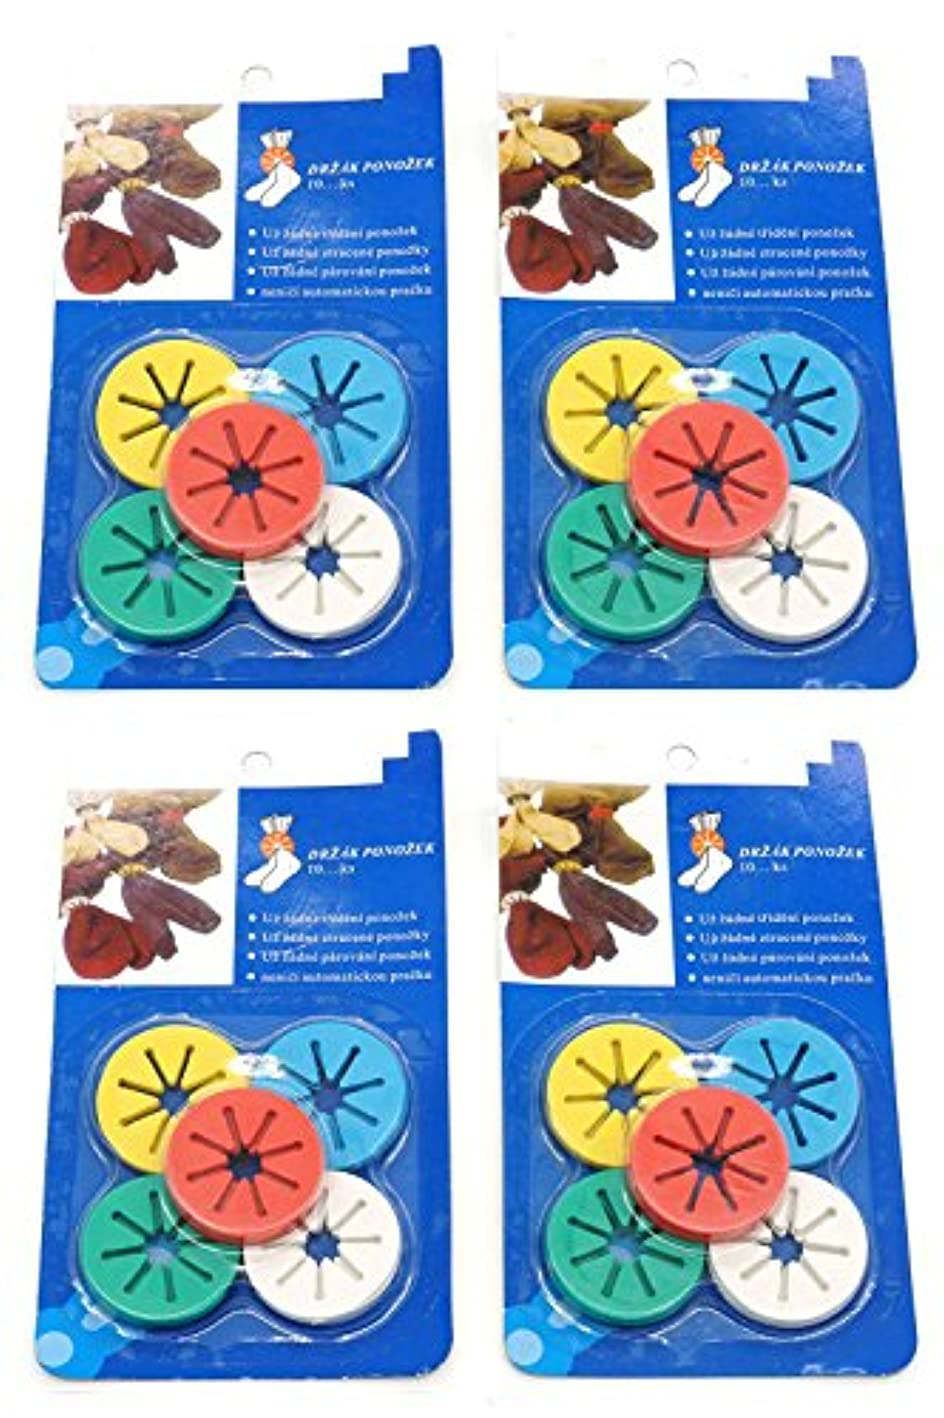 Cooplay 5 Set of 50pcs Mini Circle Sock Clip Holders Stockings Ring Locks Washing Sorters Laundry Storage Organization Soft Rubber with 5 Multicolor (50)